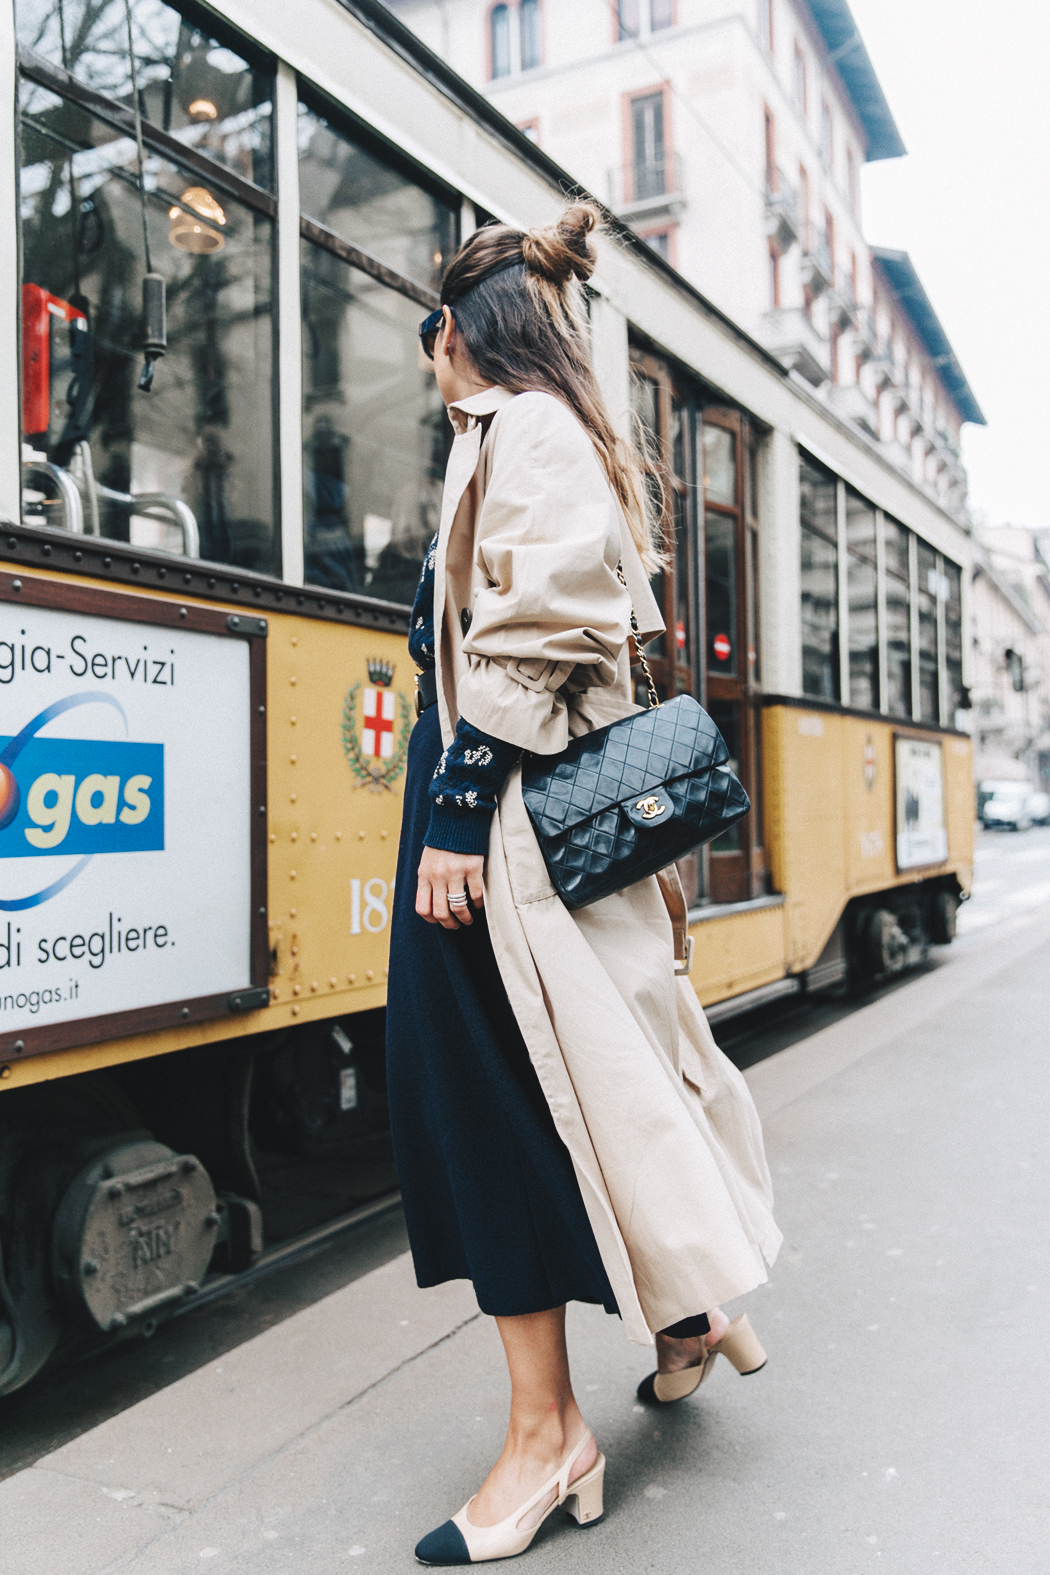 Trench_Edited-Leopard_Sweater-Midi_Skirt-Chanel_Slingback_Shoes-Chanel_Vintage_Bag-Ouftit_Streetstyle-37